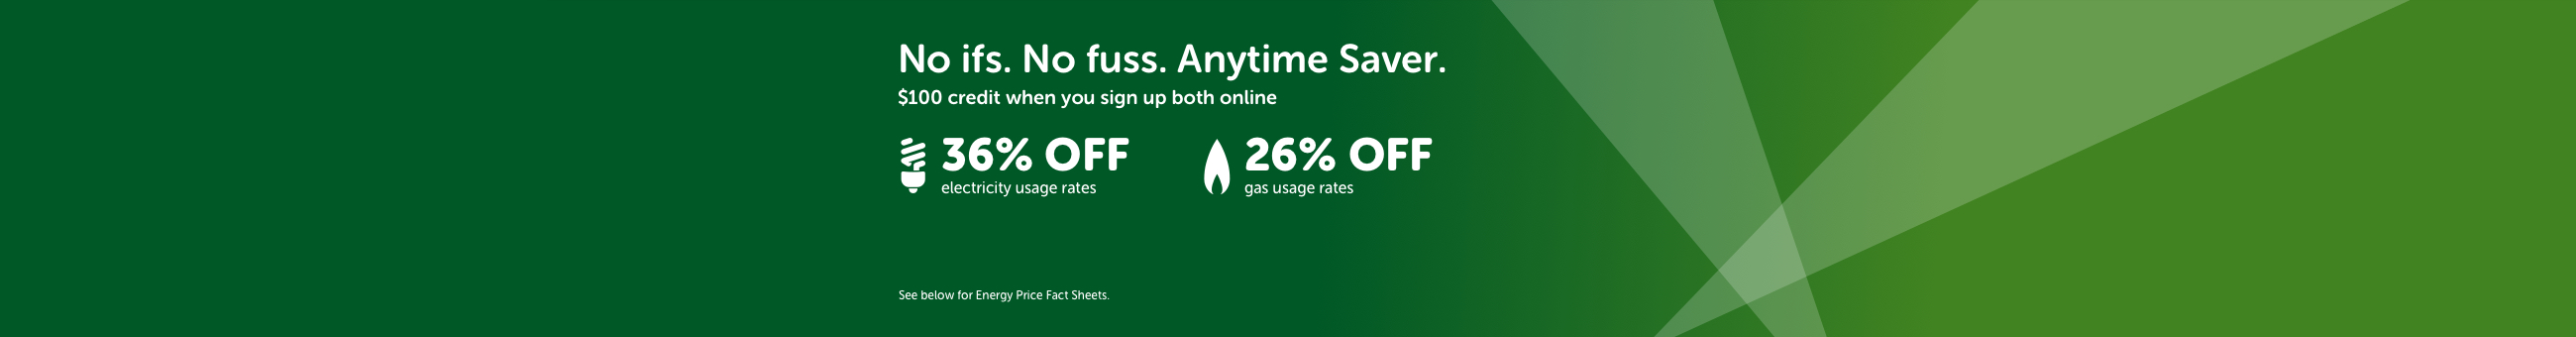 No ifs. No fuss. Anytime Saver. $100 credit when you sign up both online.